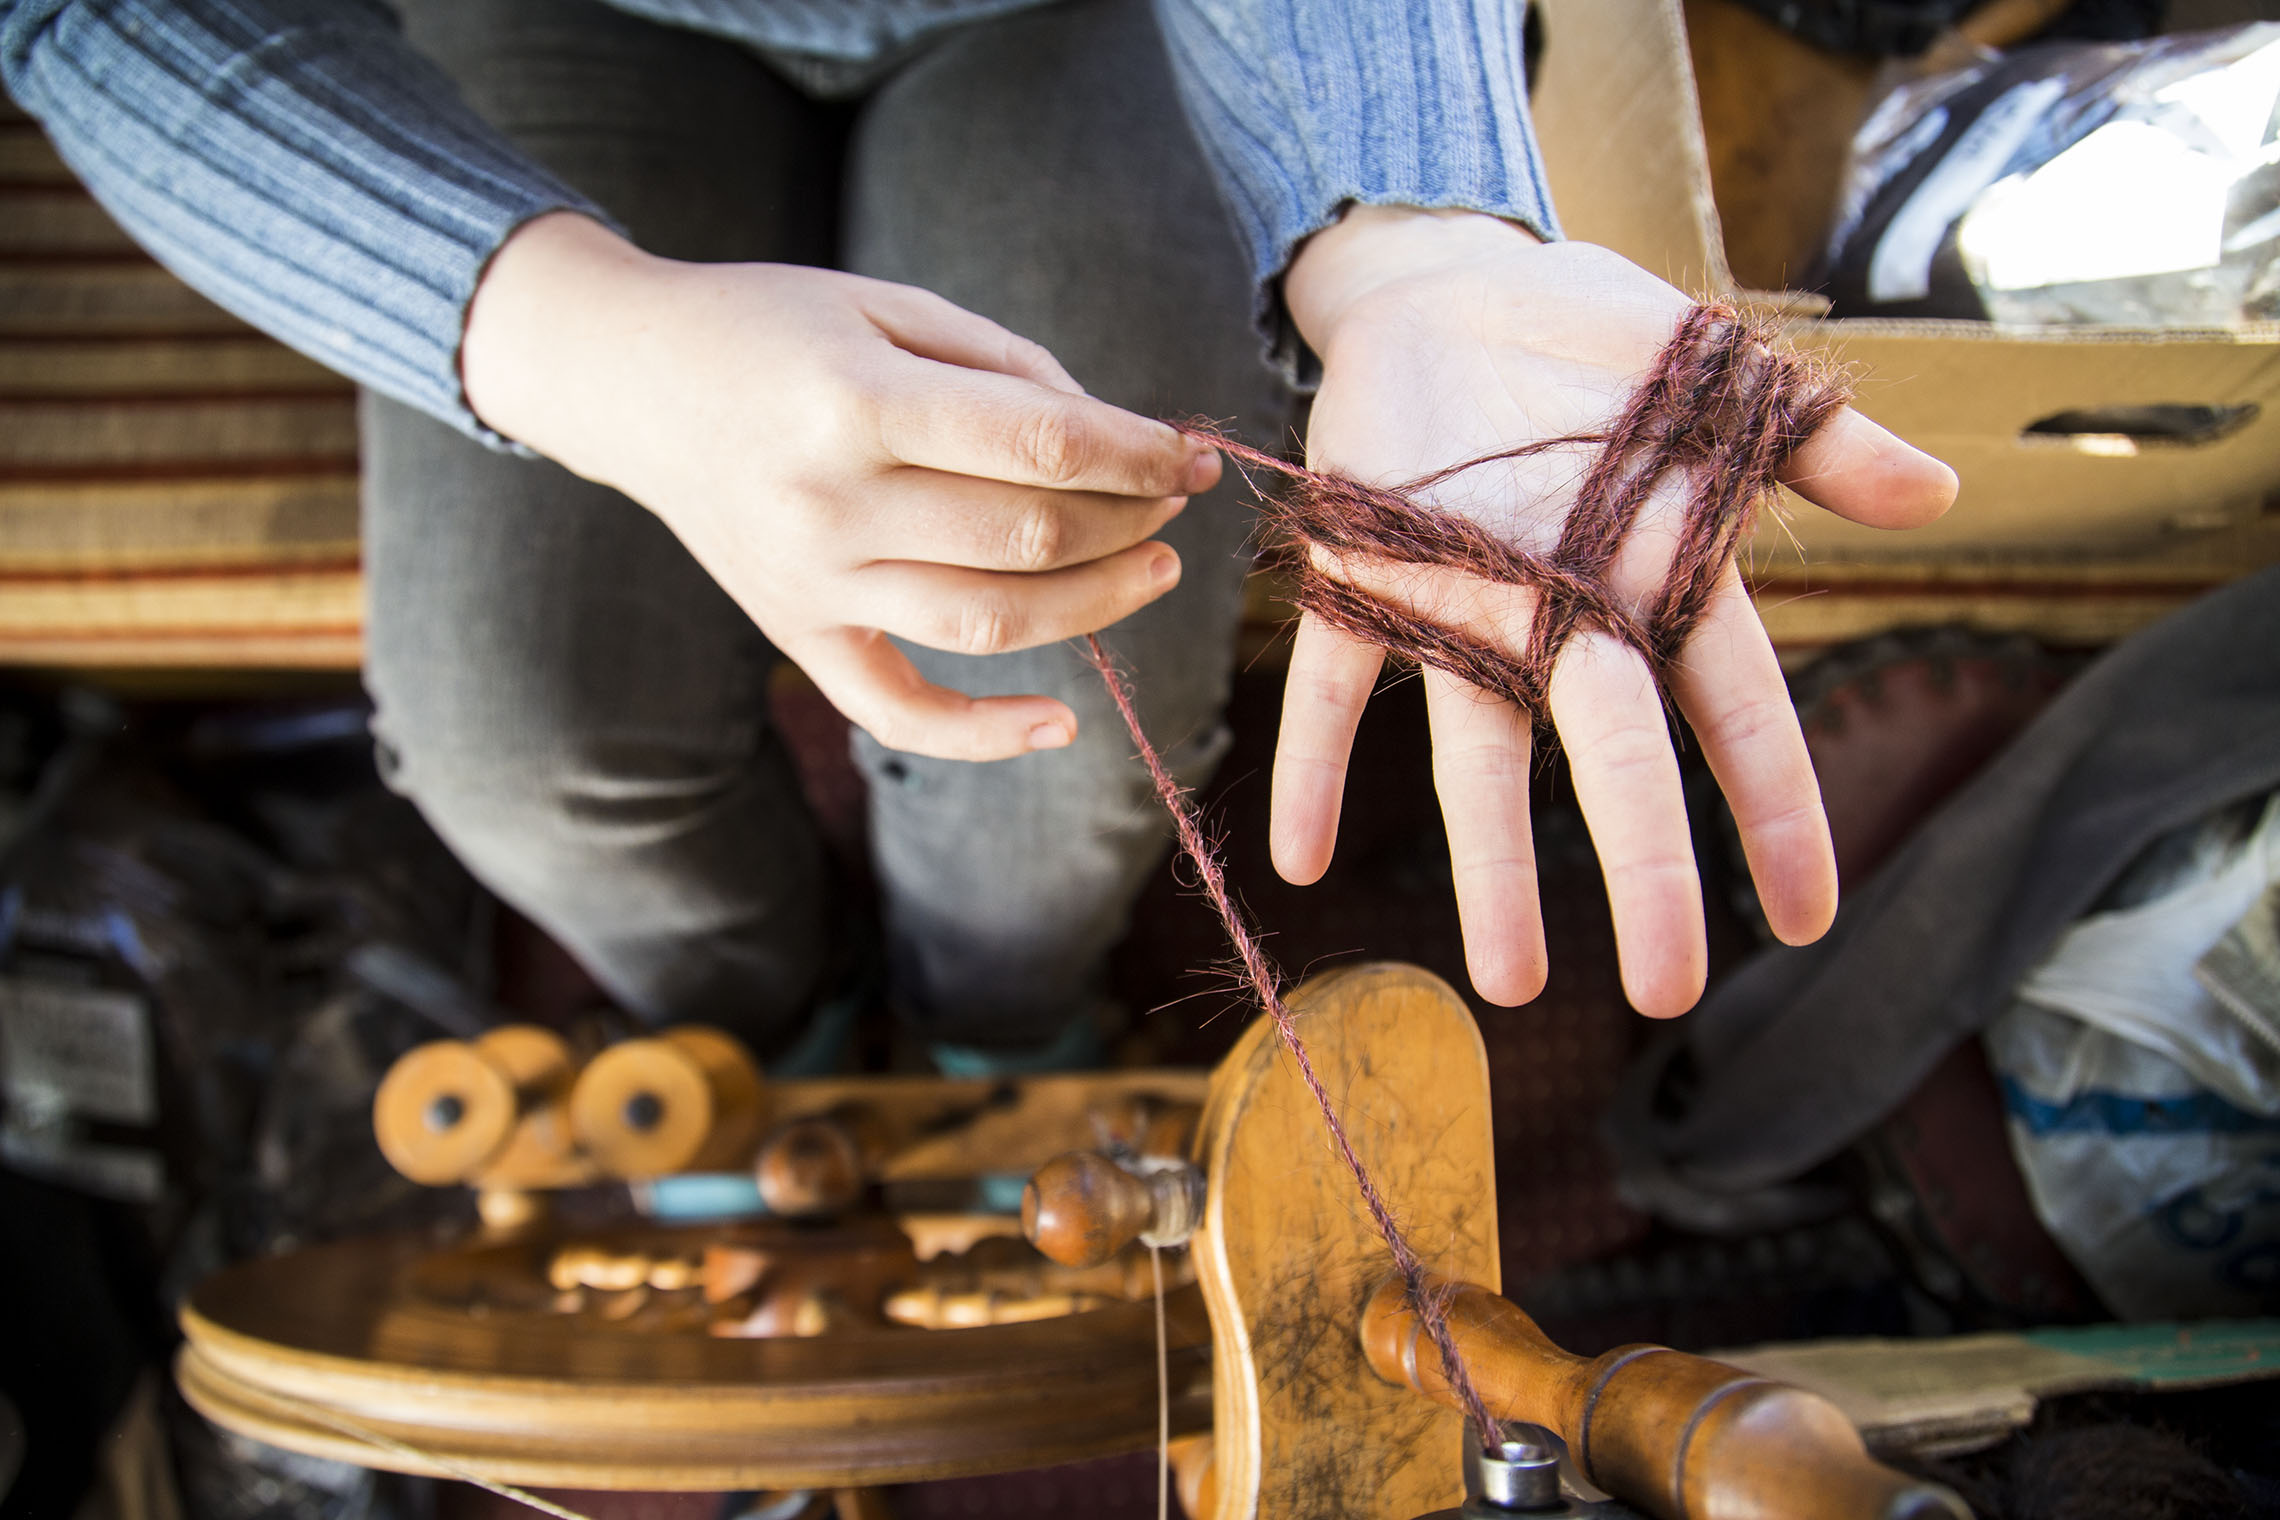 Spinning : The timeless craft process that allowed Sanne Visser to transform human hair waste into usable yarn.